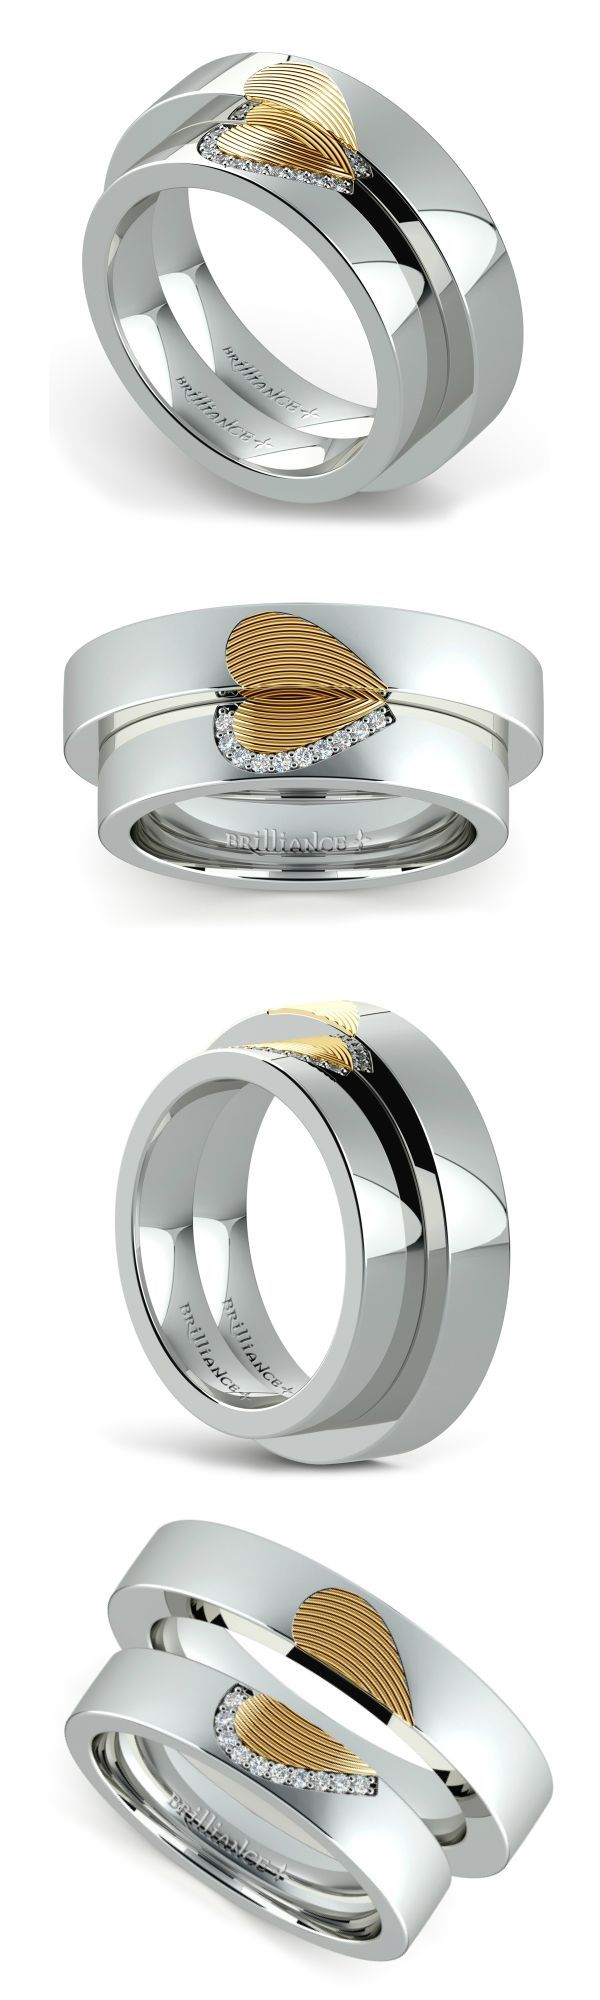 matching gold wedding bands Matching Heart Fingerprint Inlay Wedding Ring Set in White and Yellow Gold